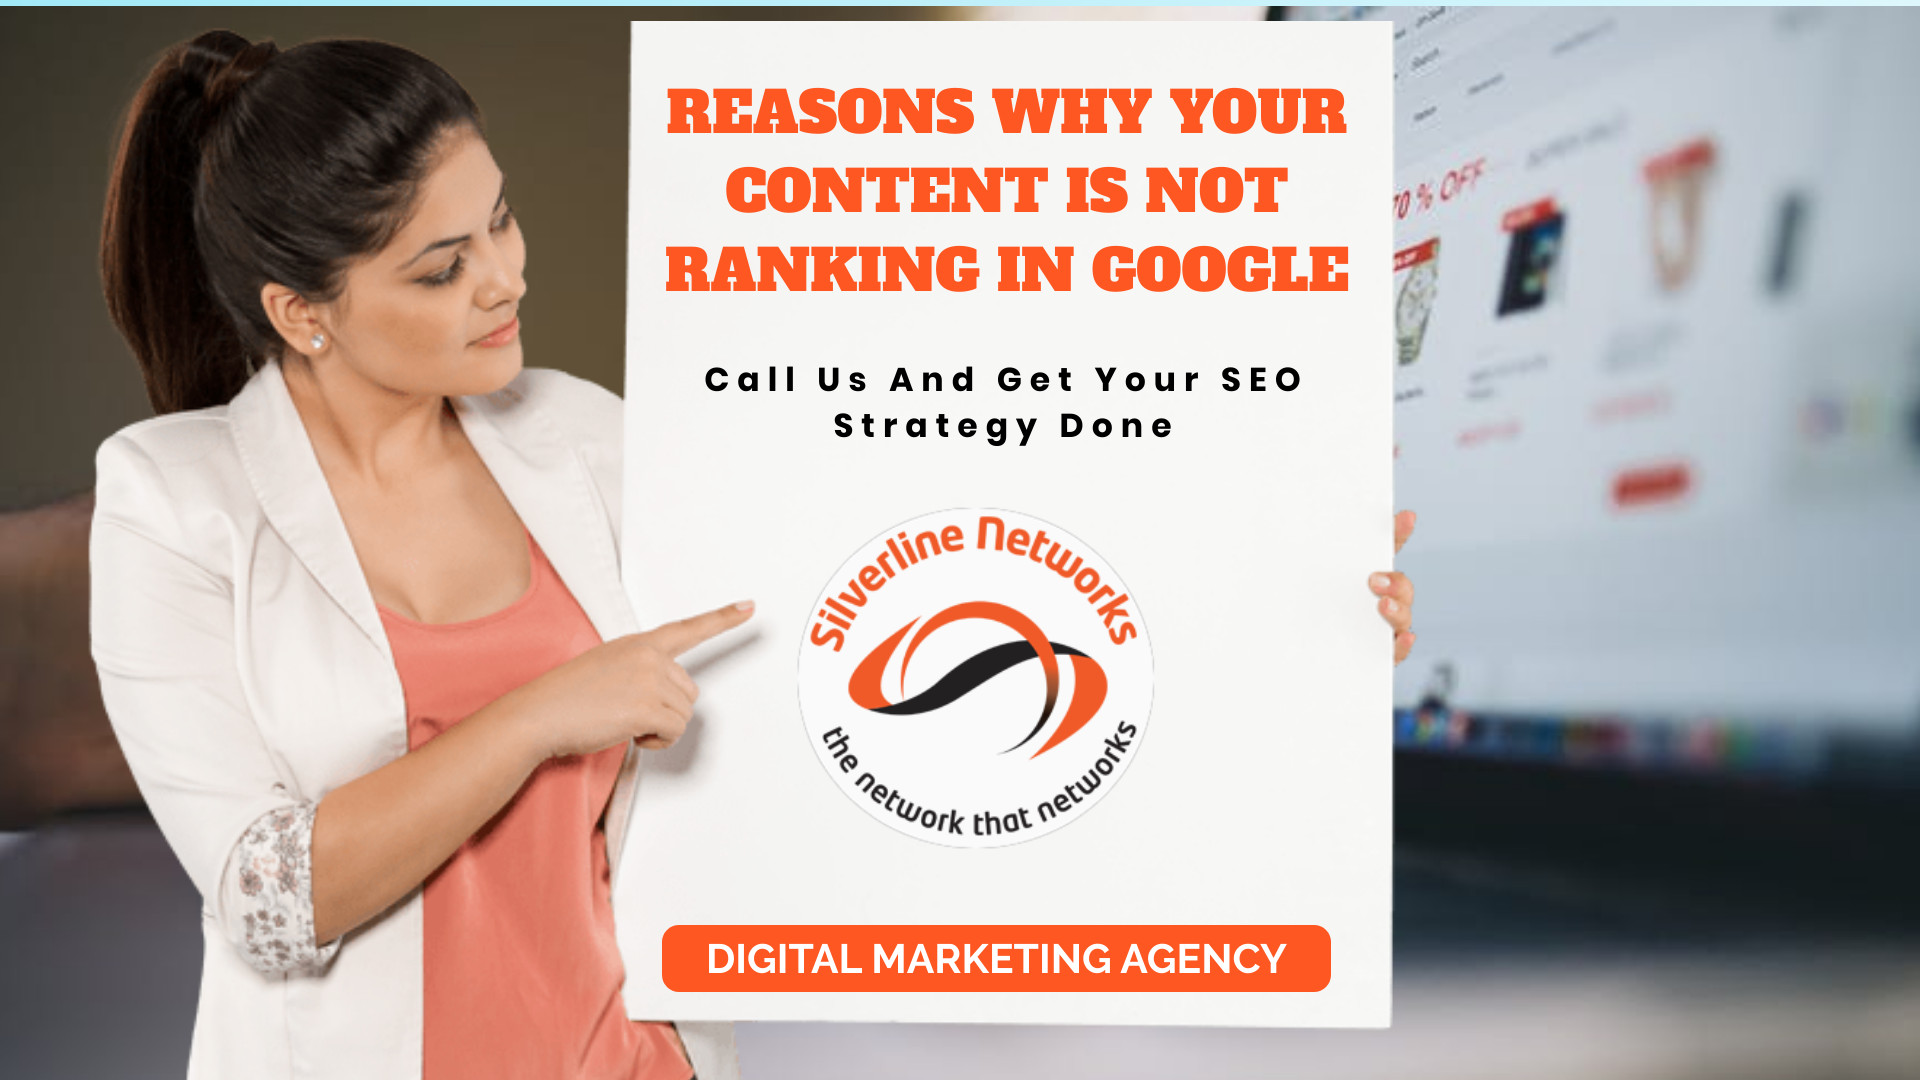 REASONS WHY YOUR CONTENT IS NOT RANKING IN GOOGLE